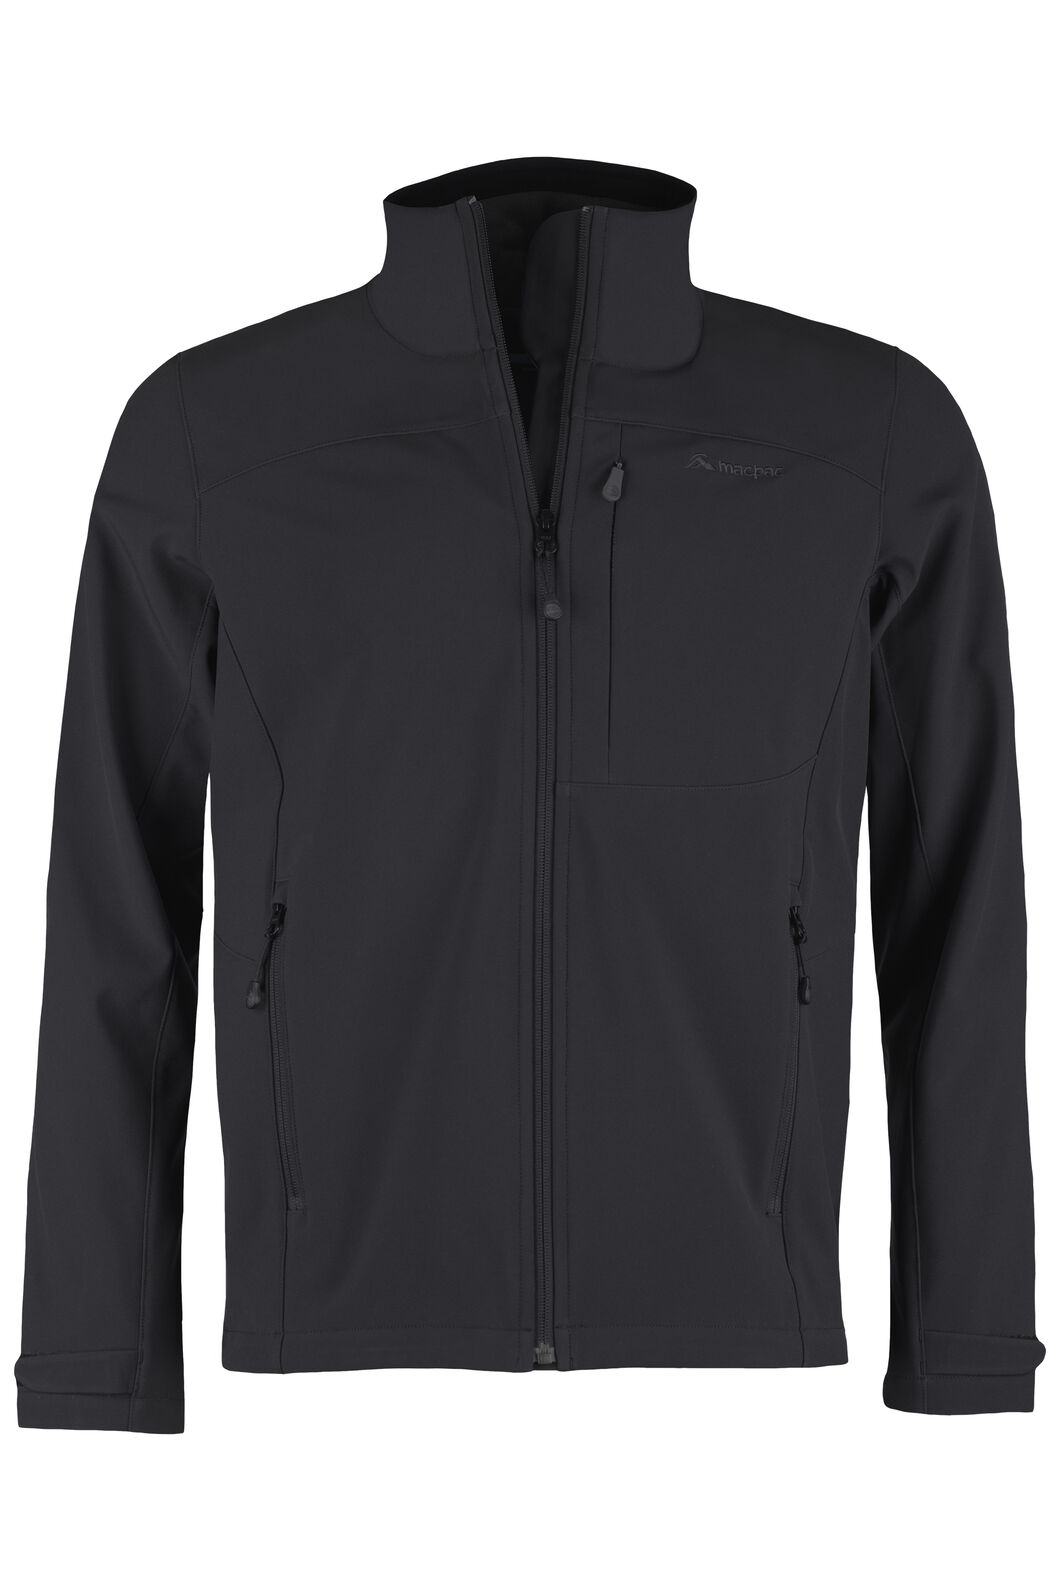 Sabre Softshell Jacket - Men's, Black, hi-res